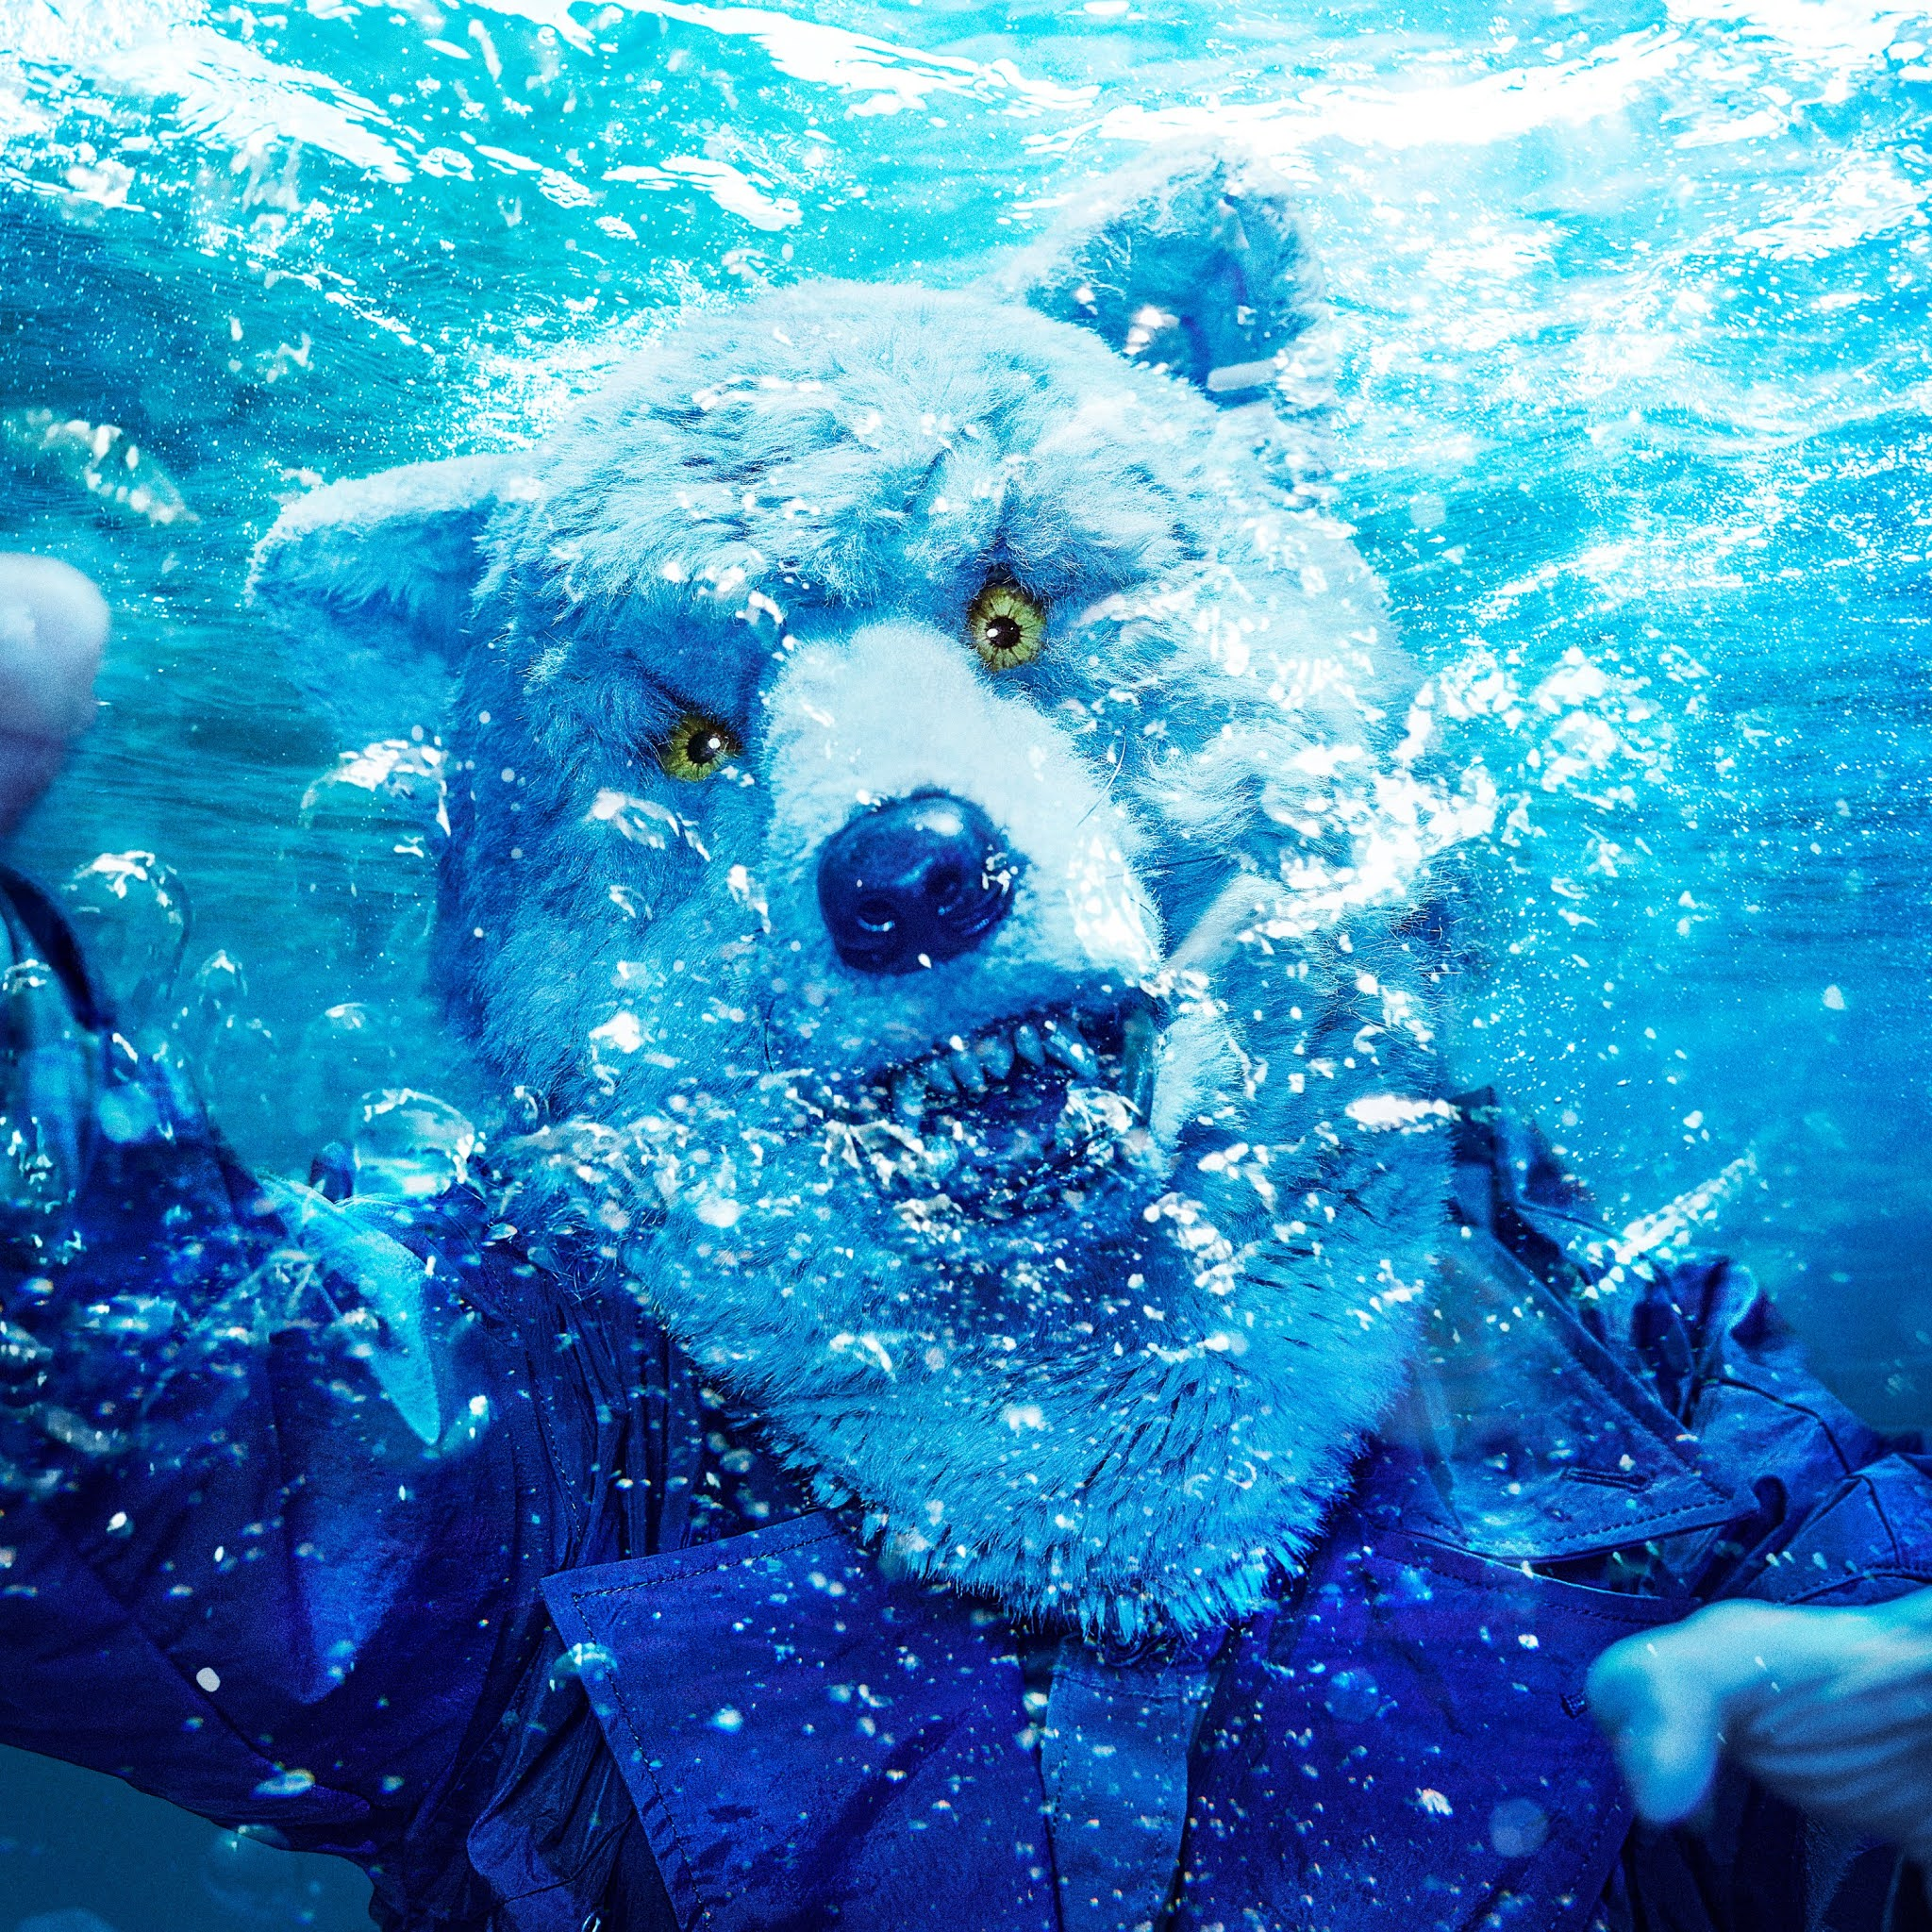 MAN WITH A MISSION - INTO THE DEEP